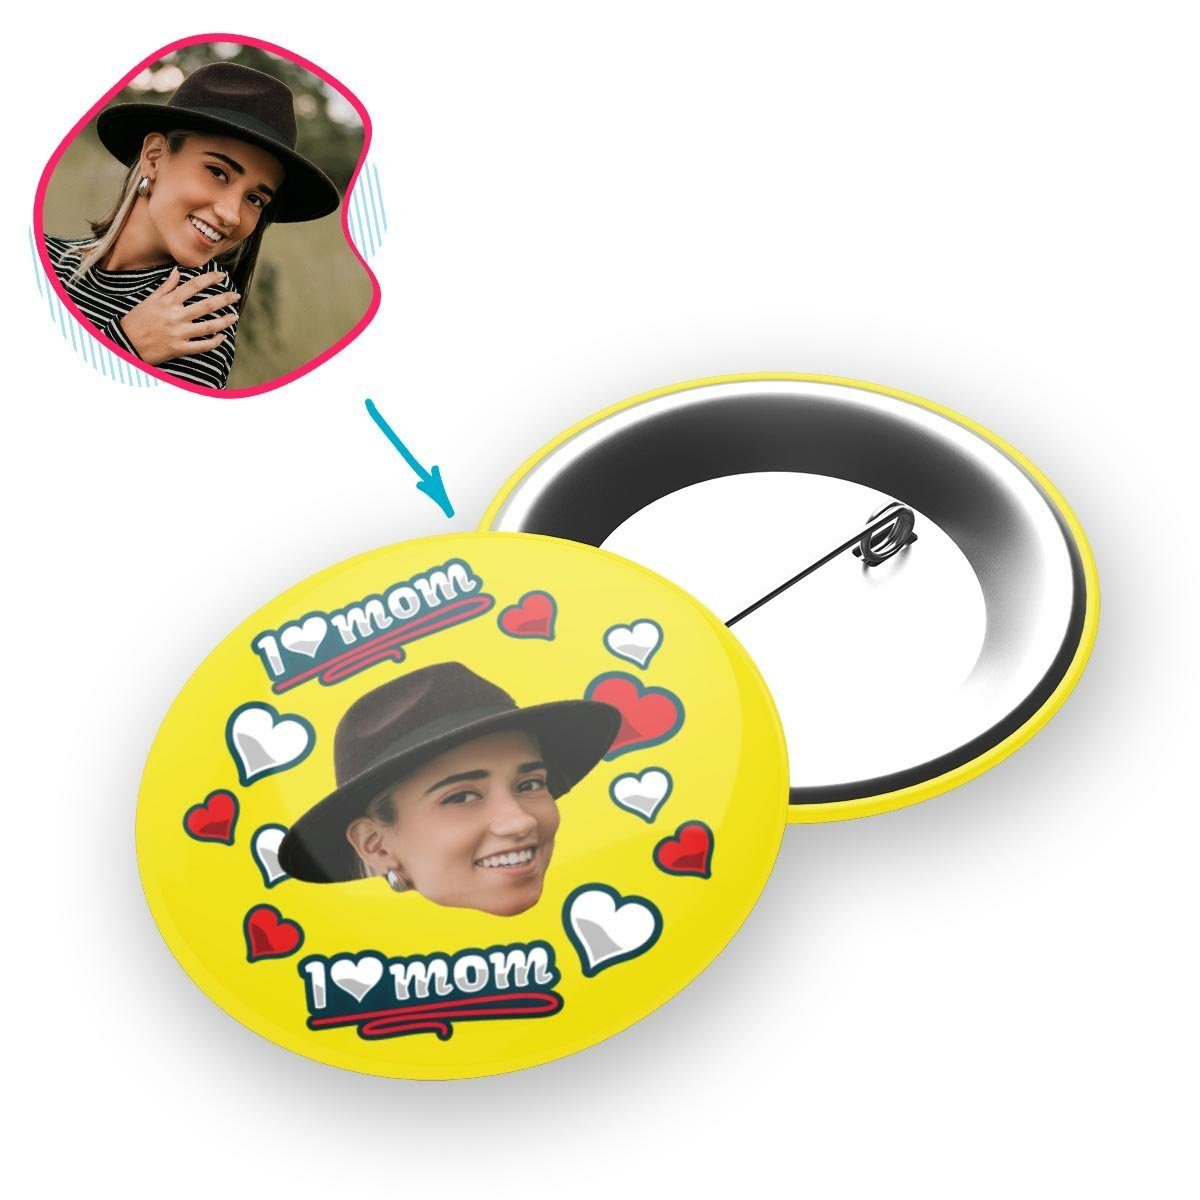 yellow Love Mom pin personalized with photo of face printed on it